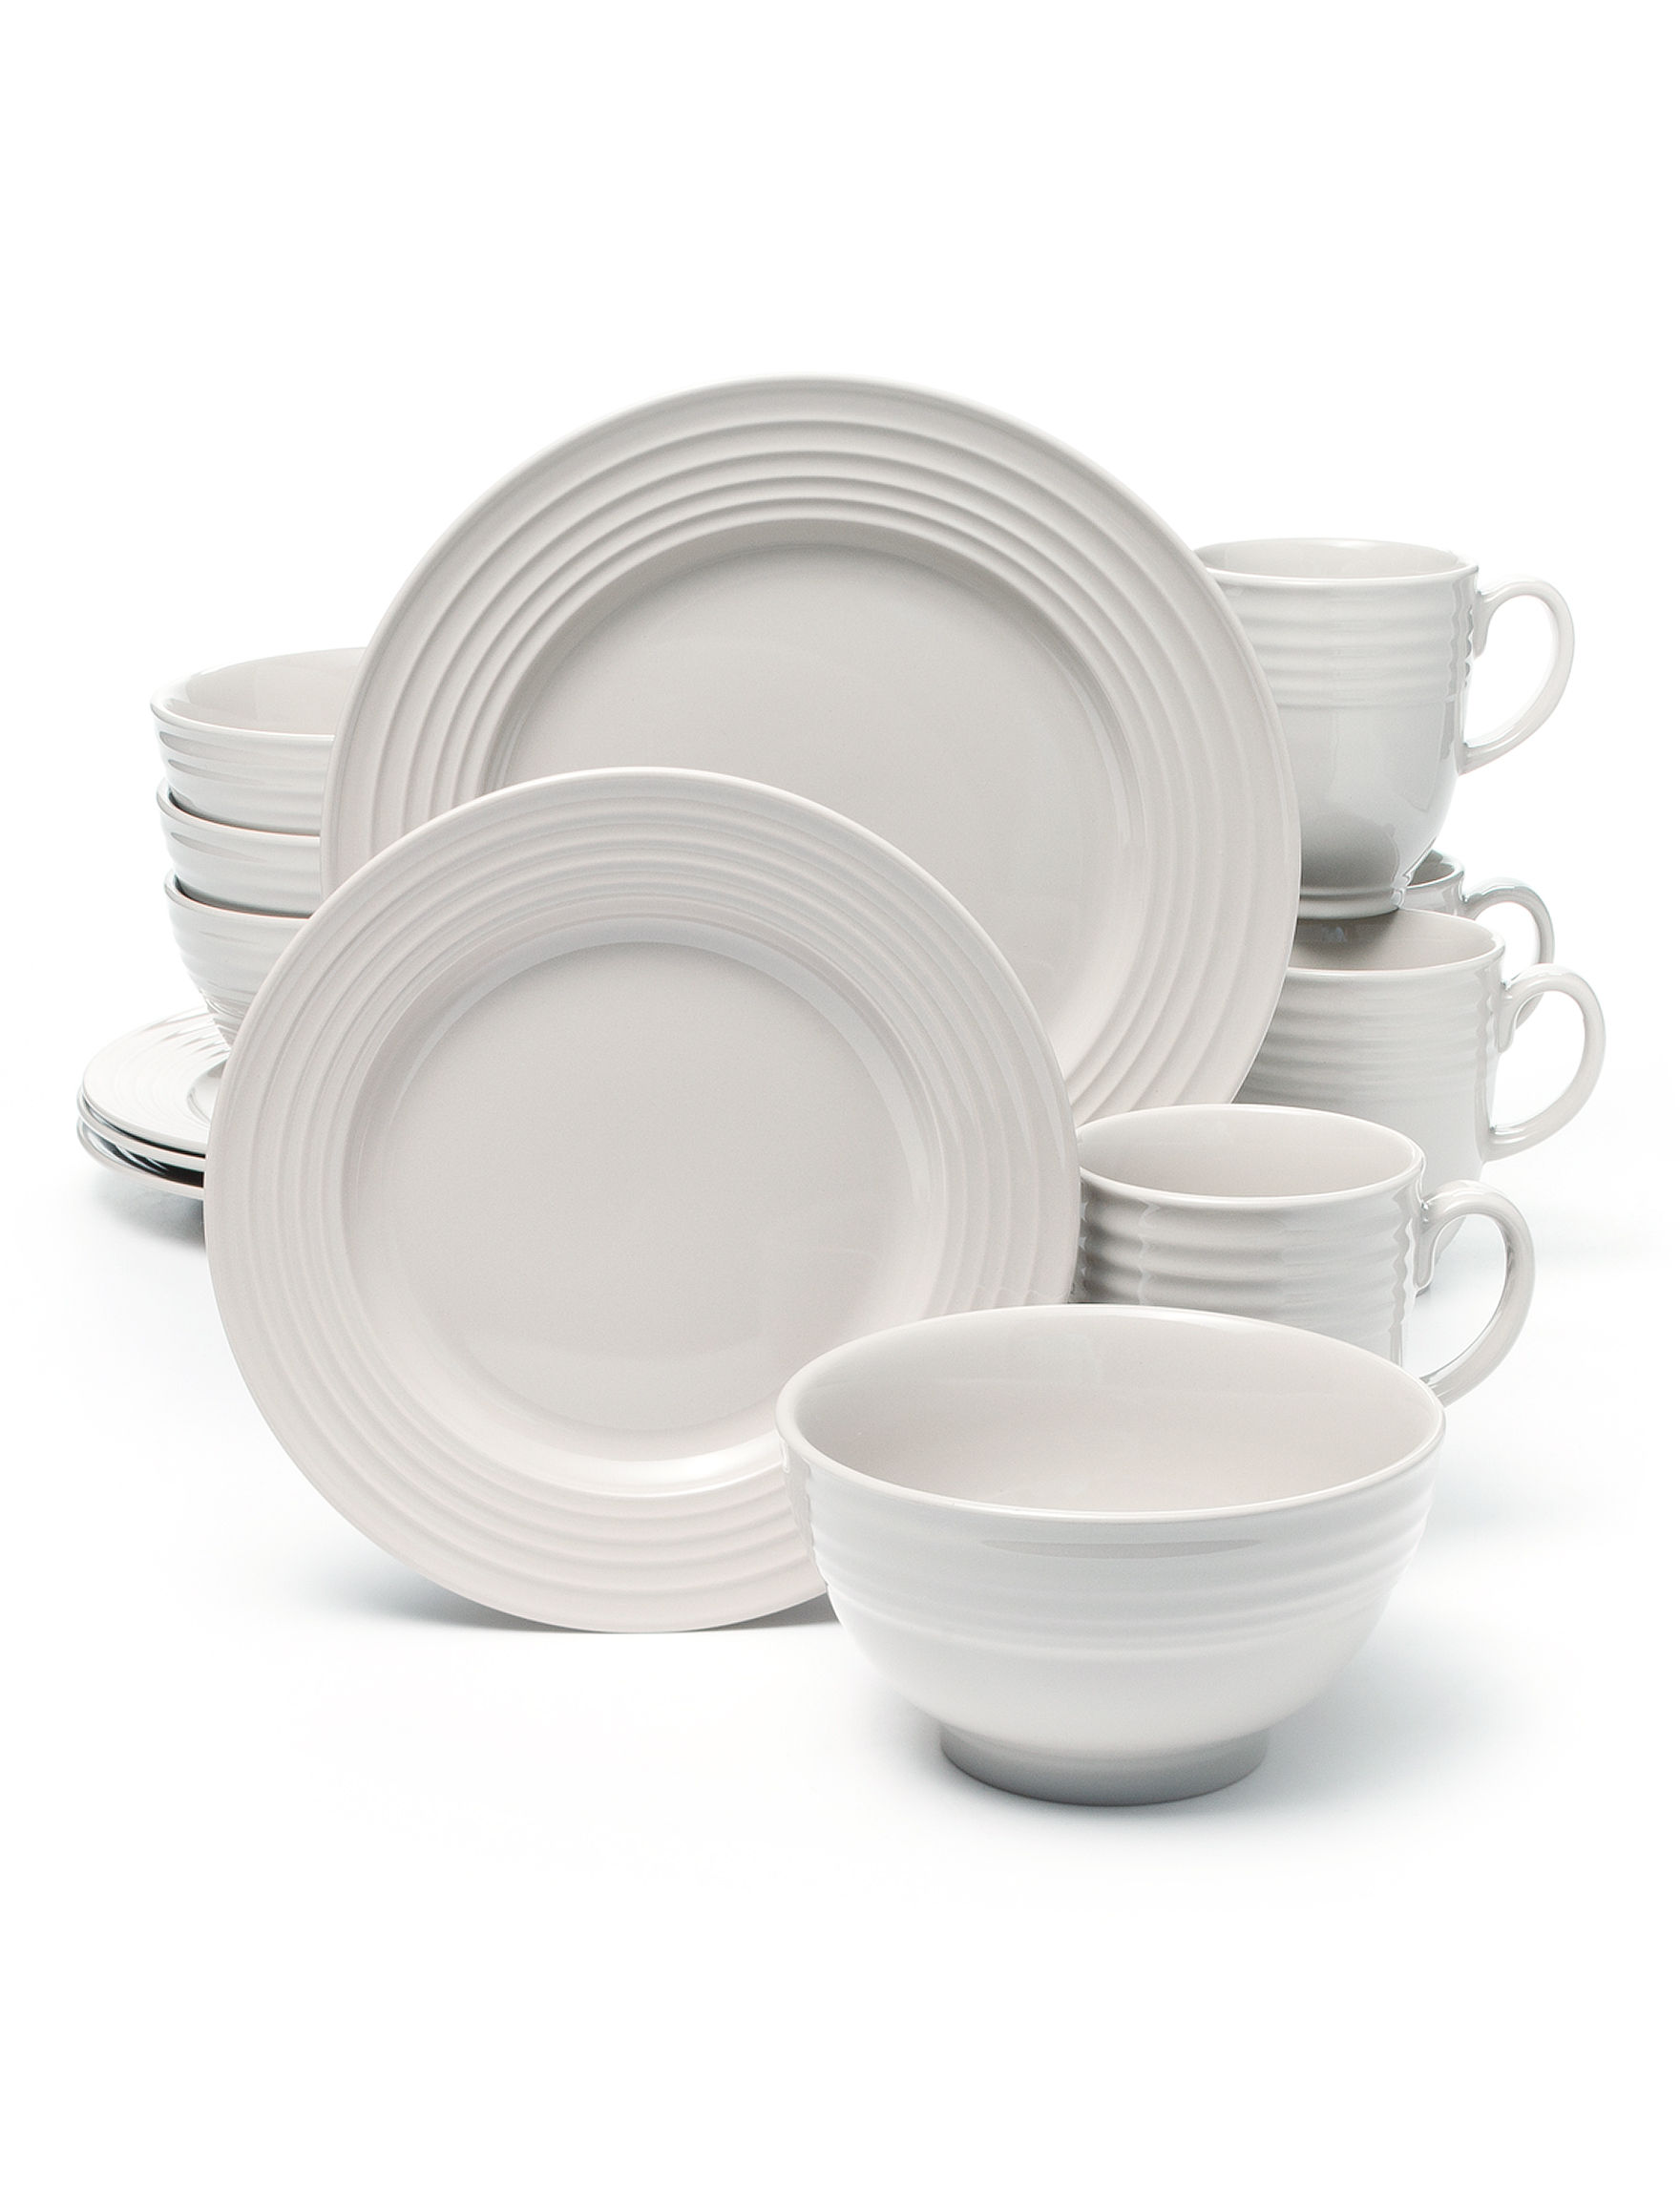 Dinnerware Set - CLOSEOUT!  sc 1 st  Stage Stores & Gibson 16-pc. Dinnerware Set - CLOSEOUT! | Stage Stores